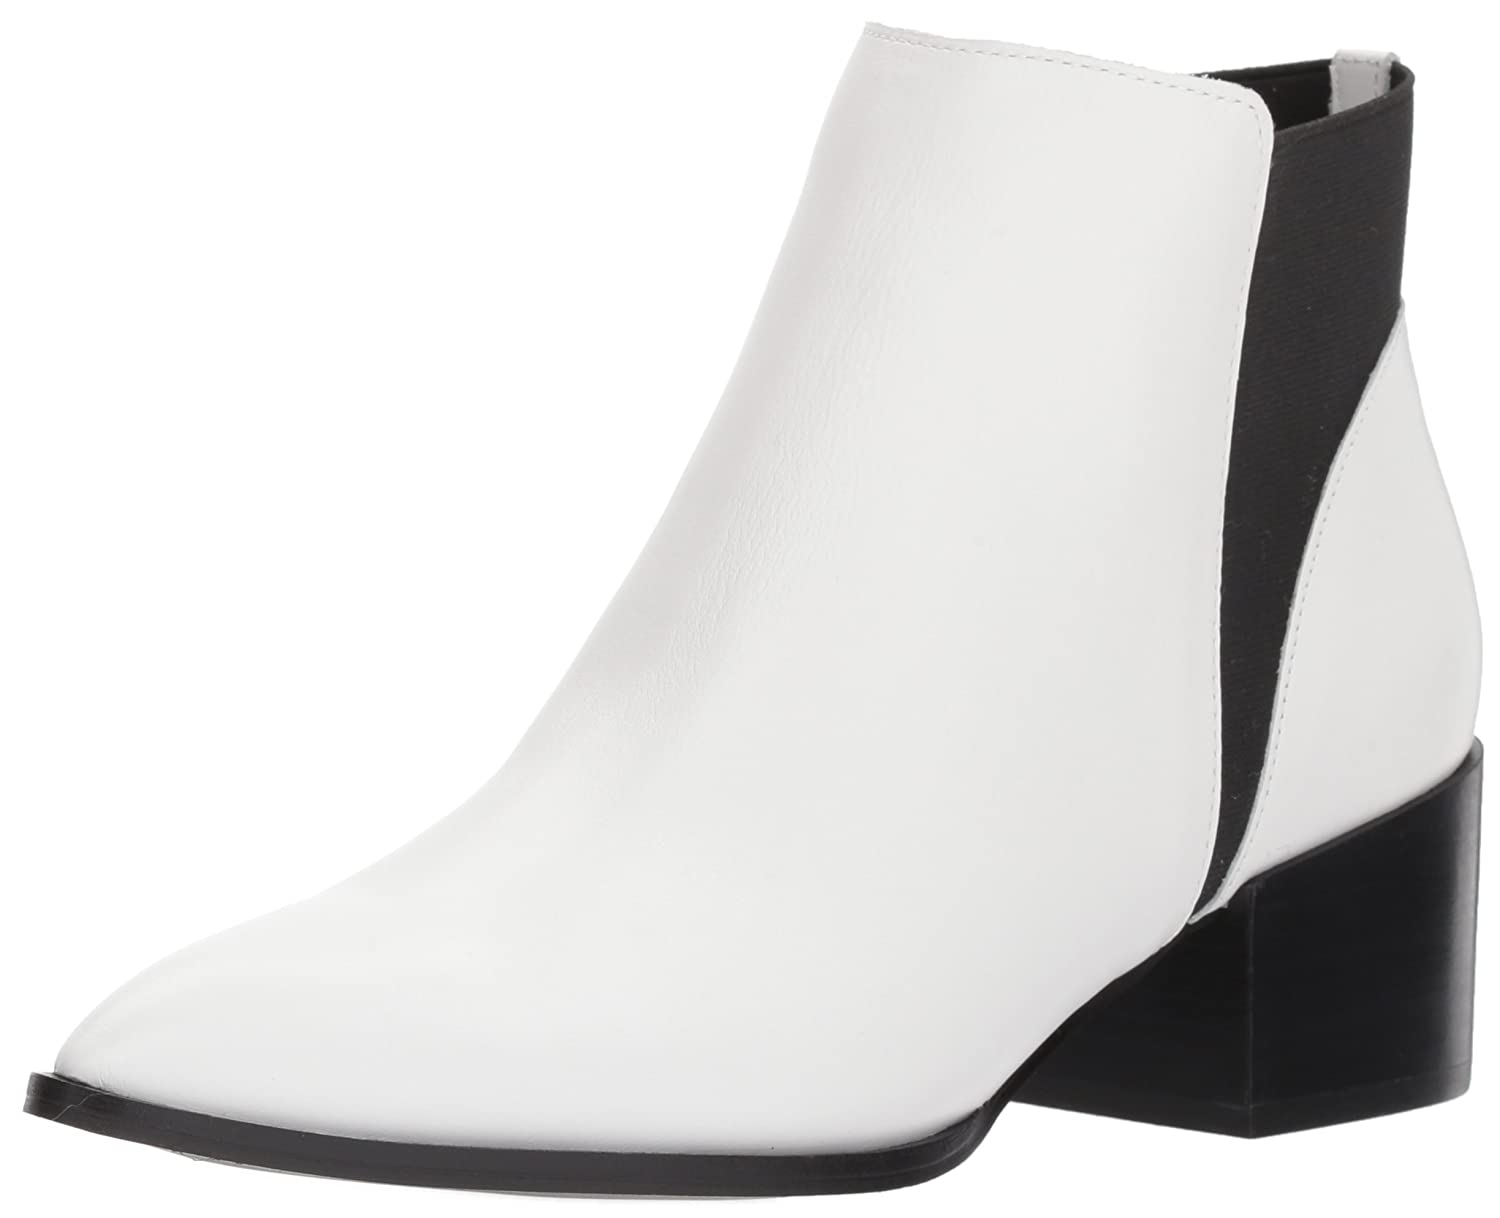 Chinese Laundry Women's Finn Ankle Bootie B075ZMHD2X 10 B(M) US|White Leather